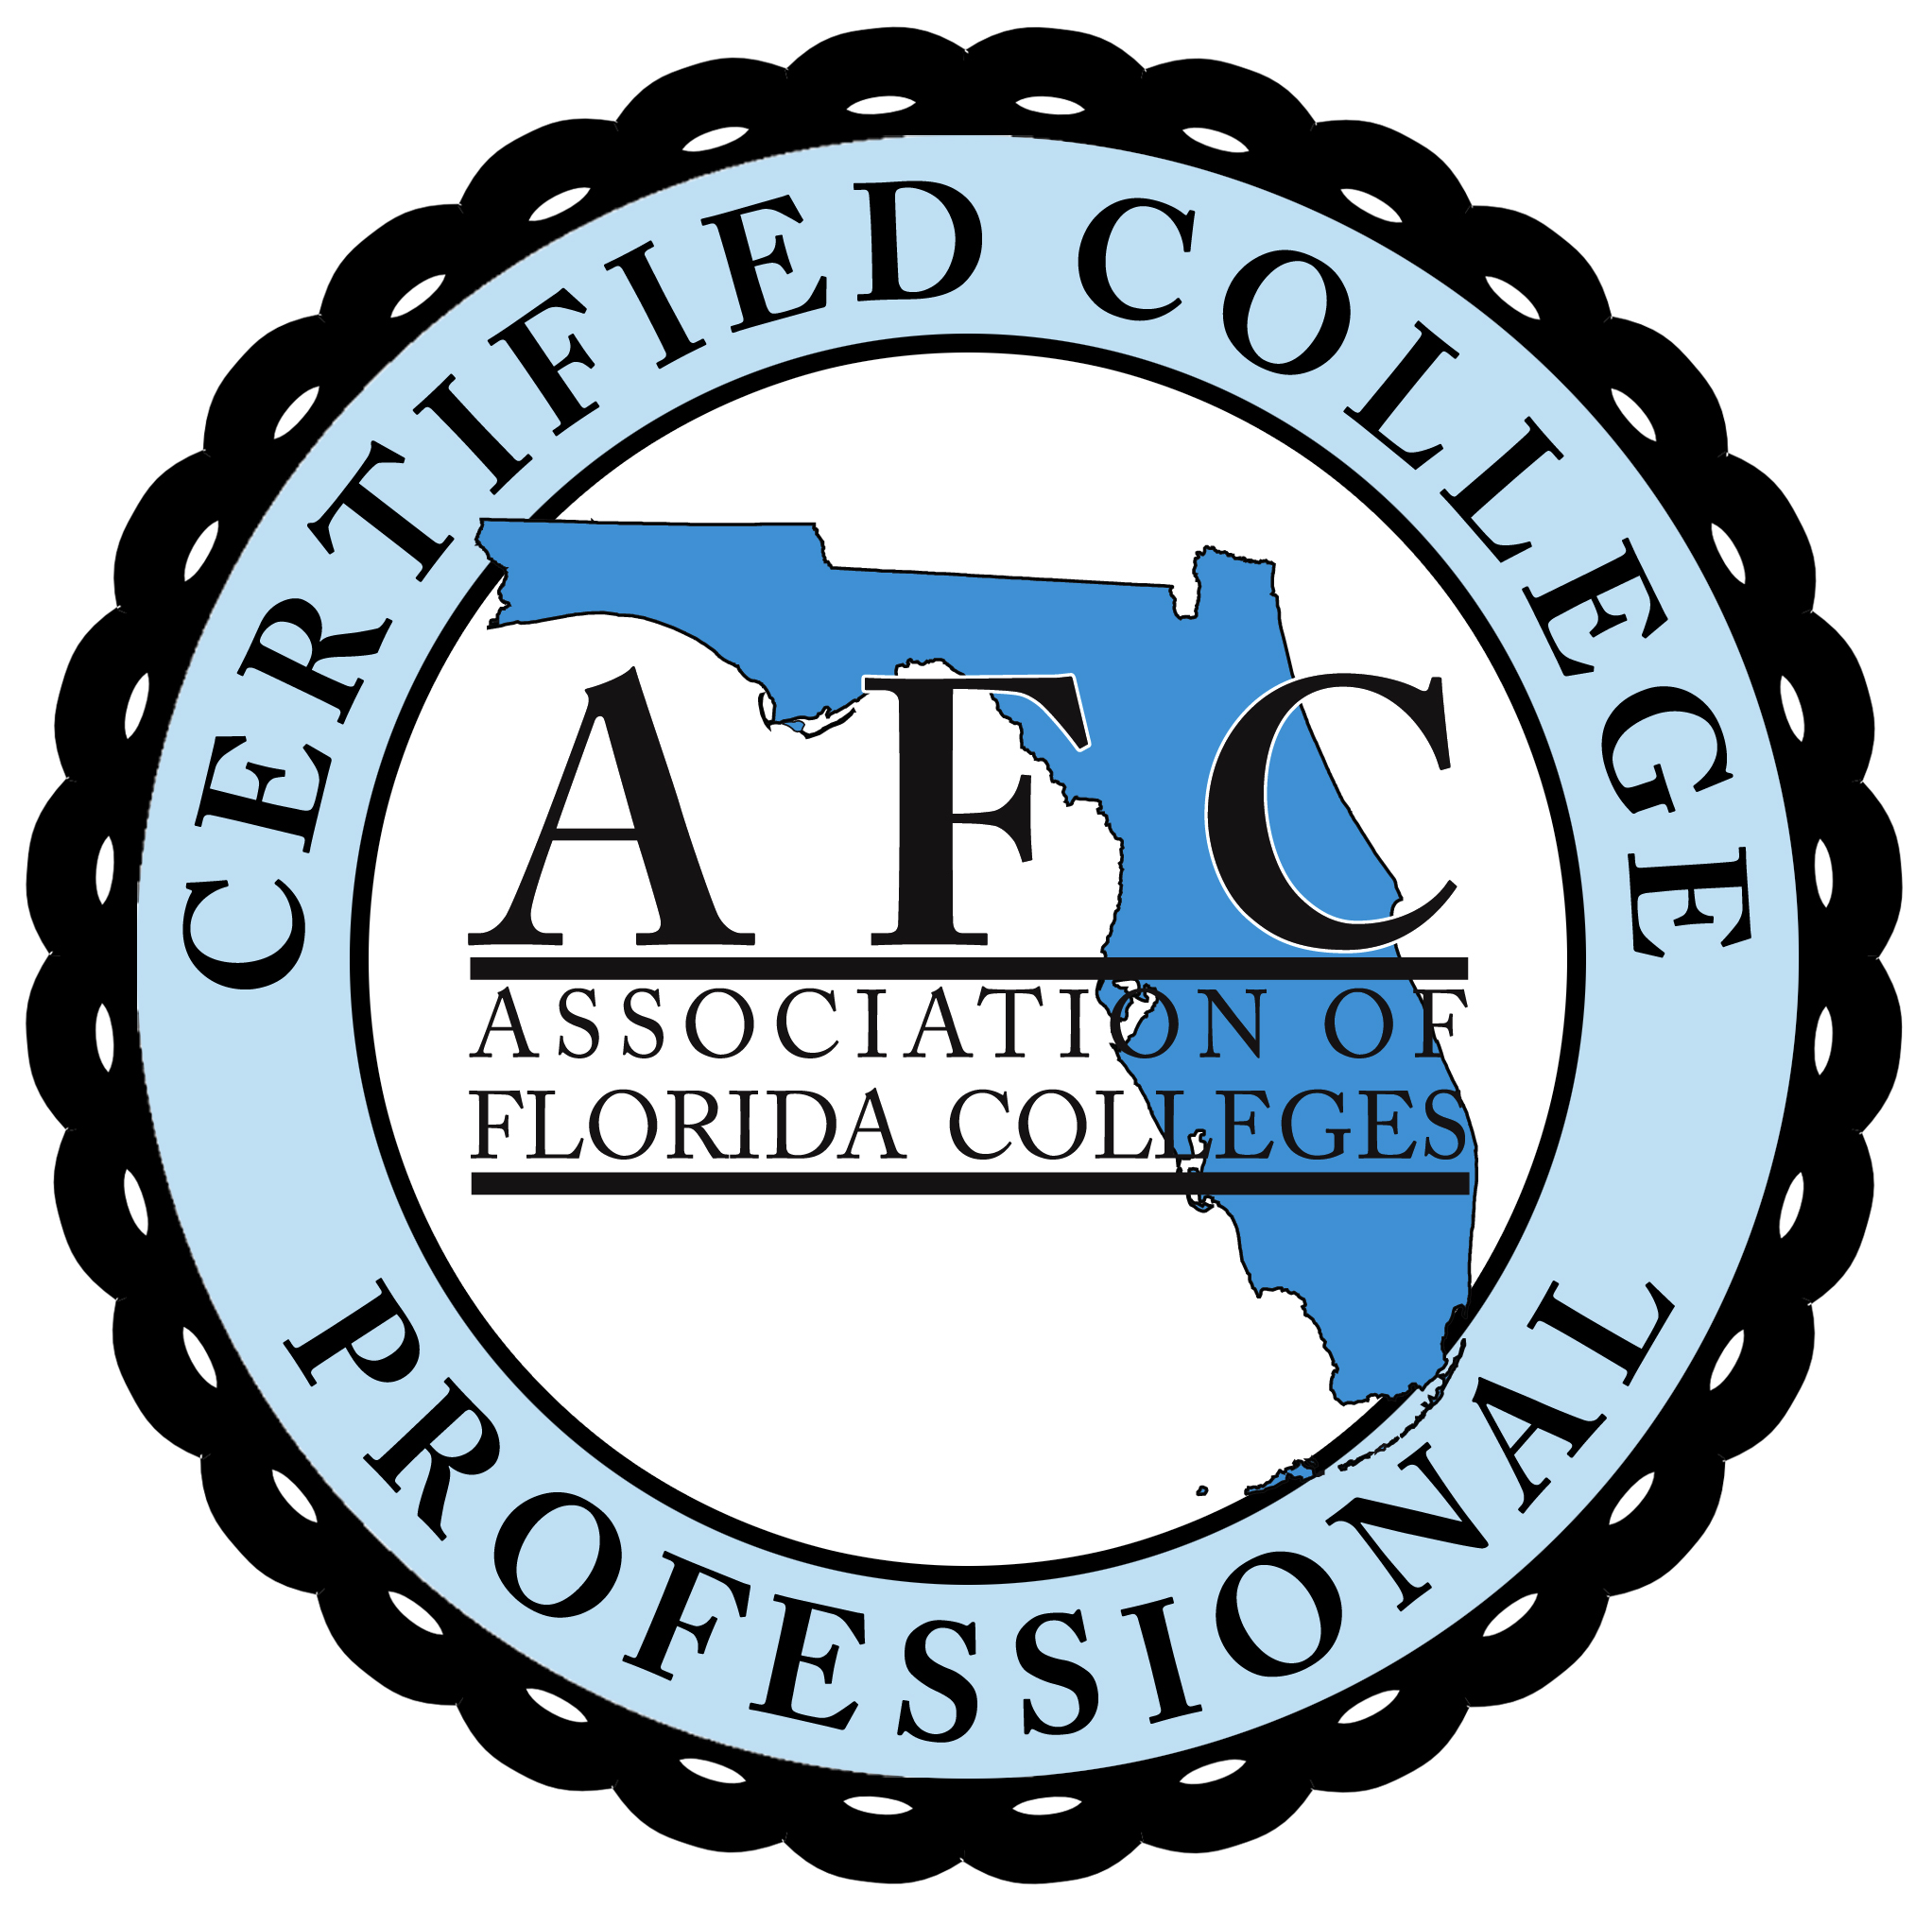 Certified College Professional